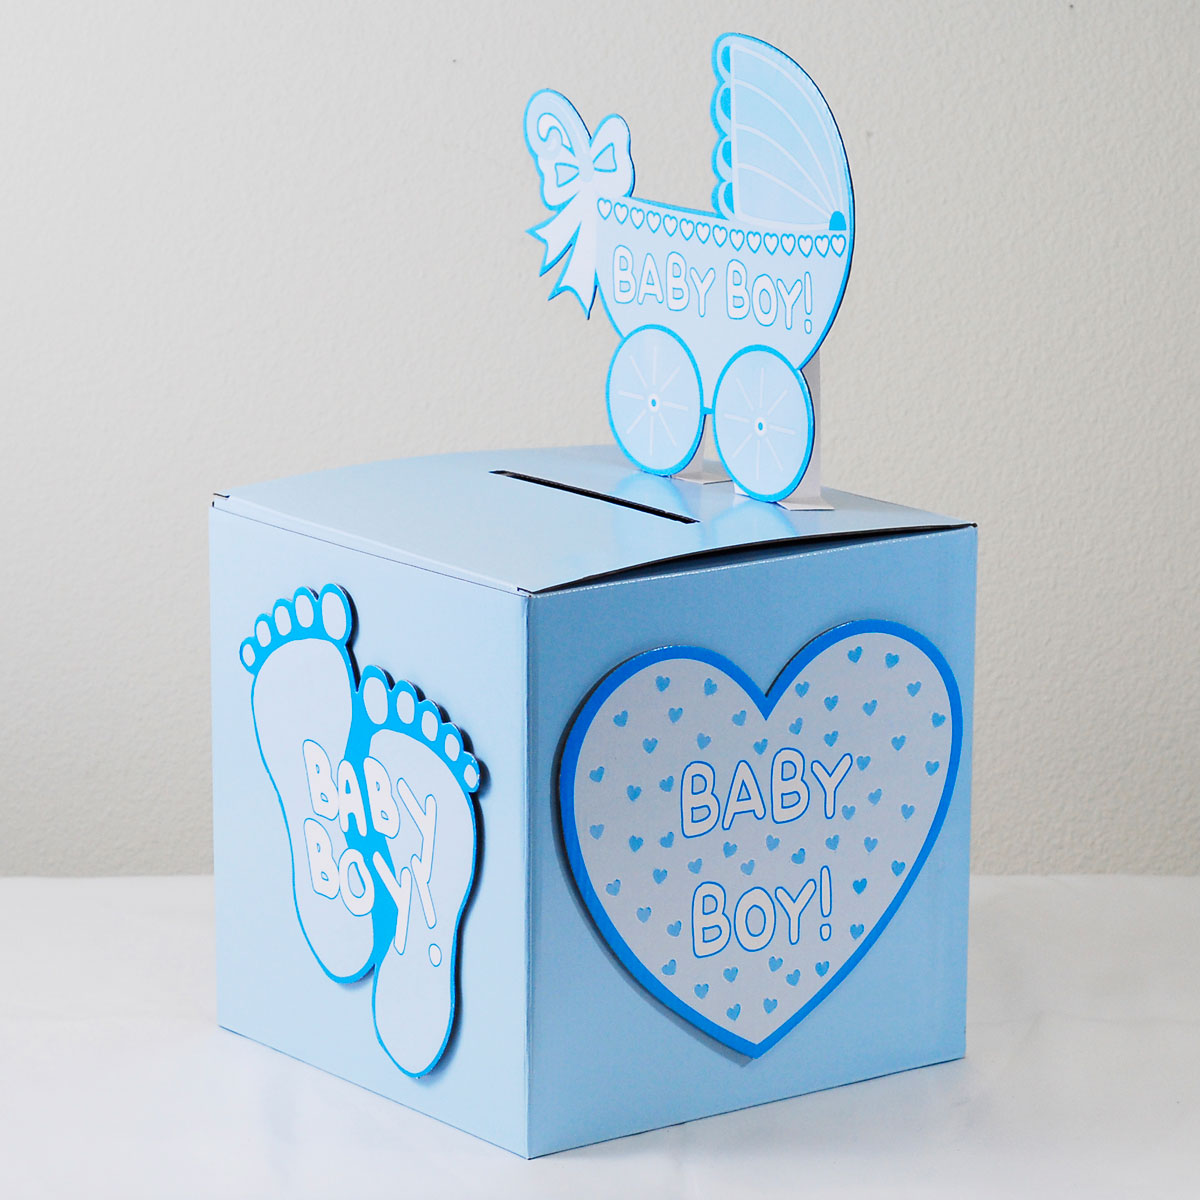 Ifavor123 Com Babyshower Wishing Well Card Gift Or Money Box Boy